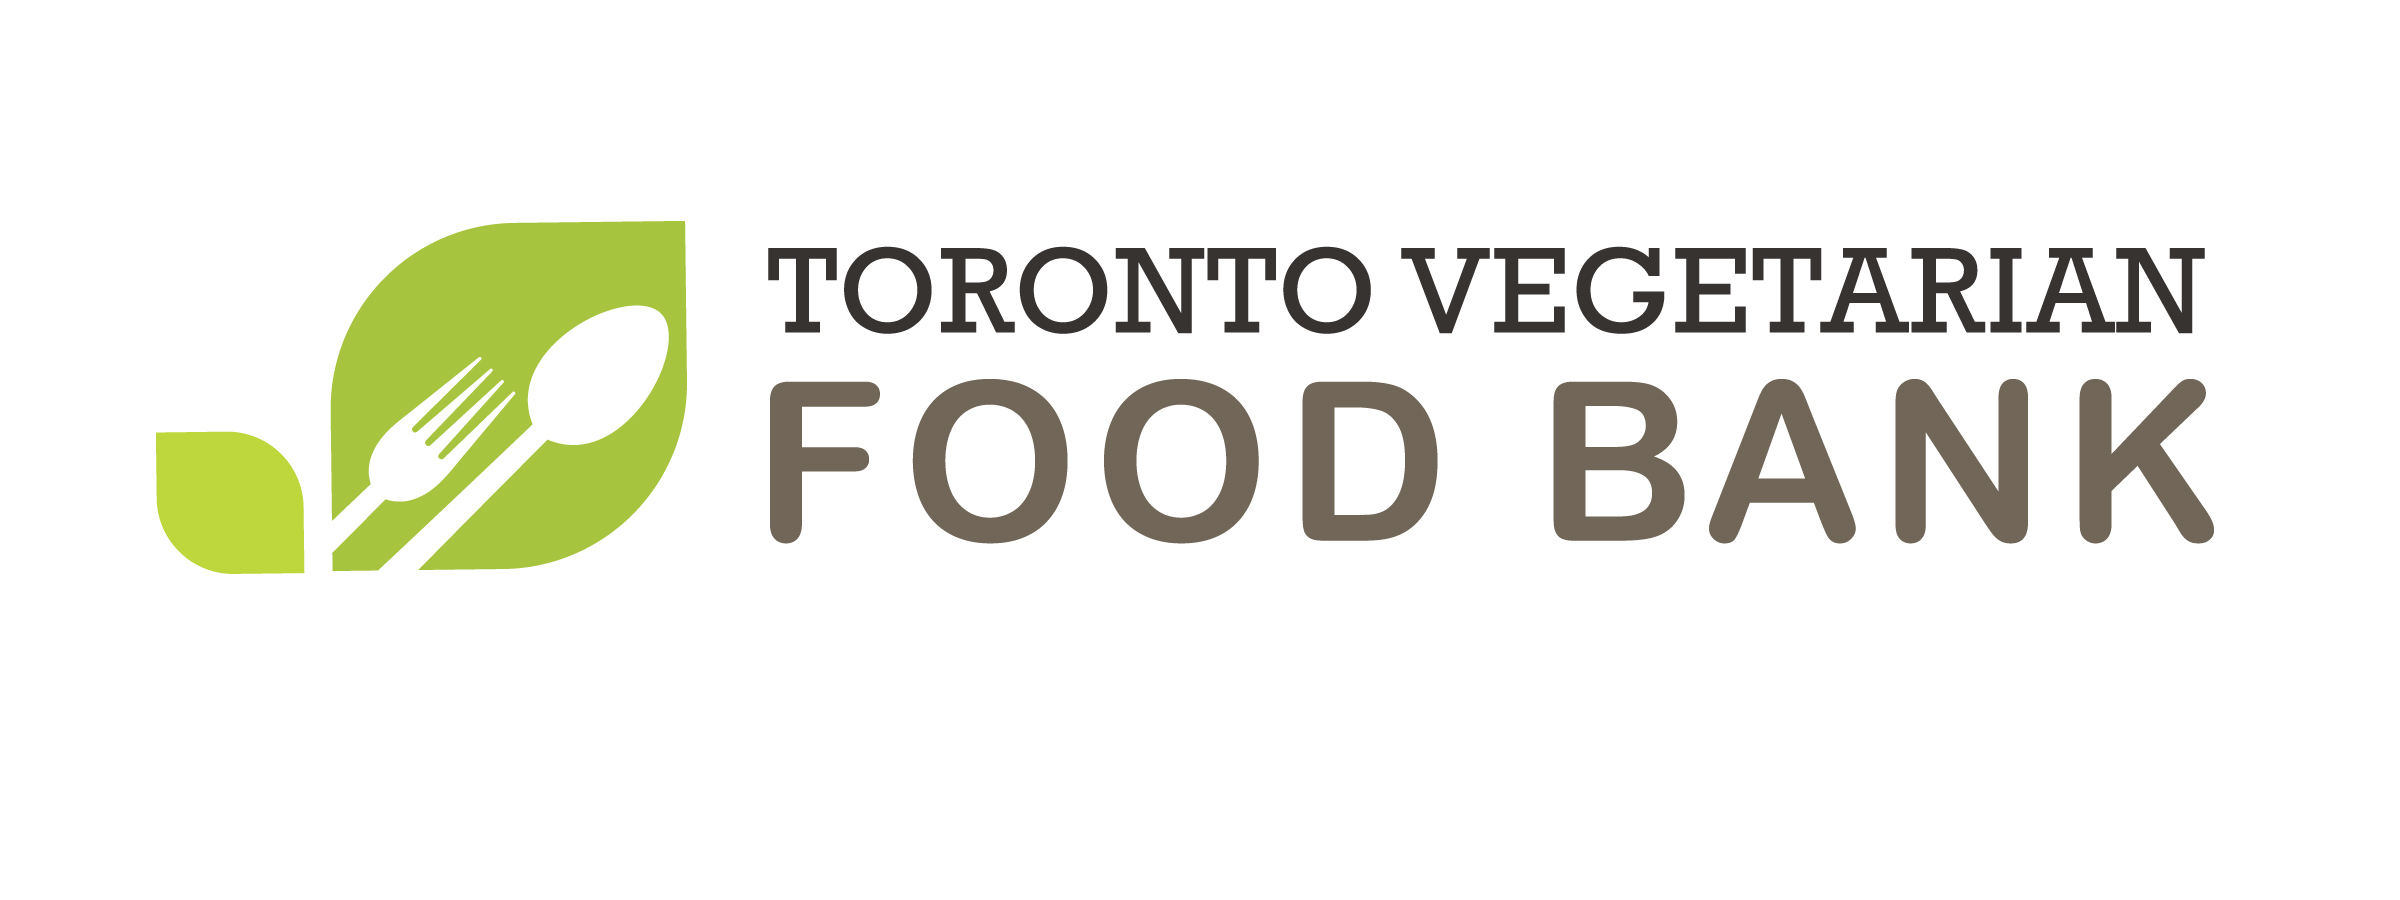 Vegan dating site toronto